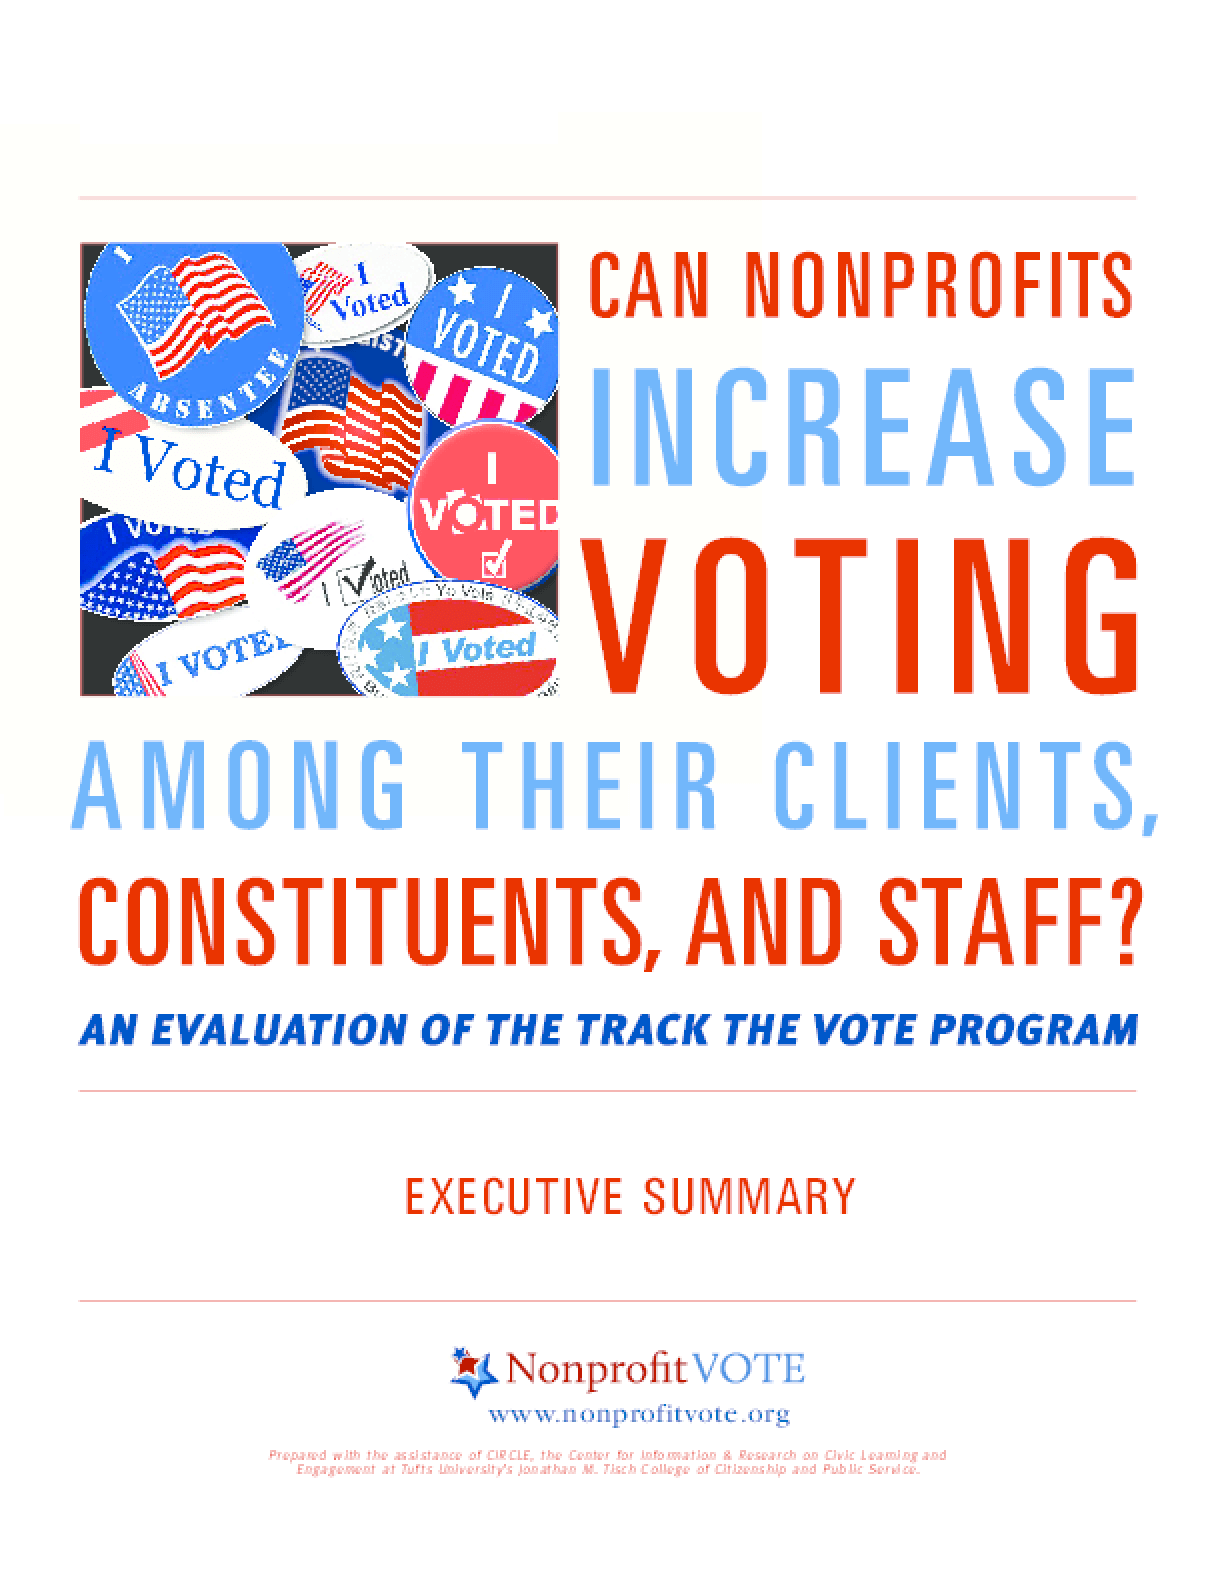 Can Nonprofits Increase Voting Among Their Clients, Constituents and Staff?: An Evaluation of the Track the Vote Program - Executive Summary